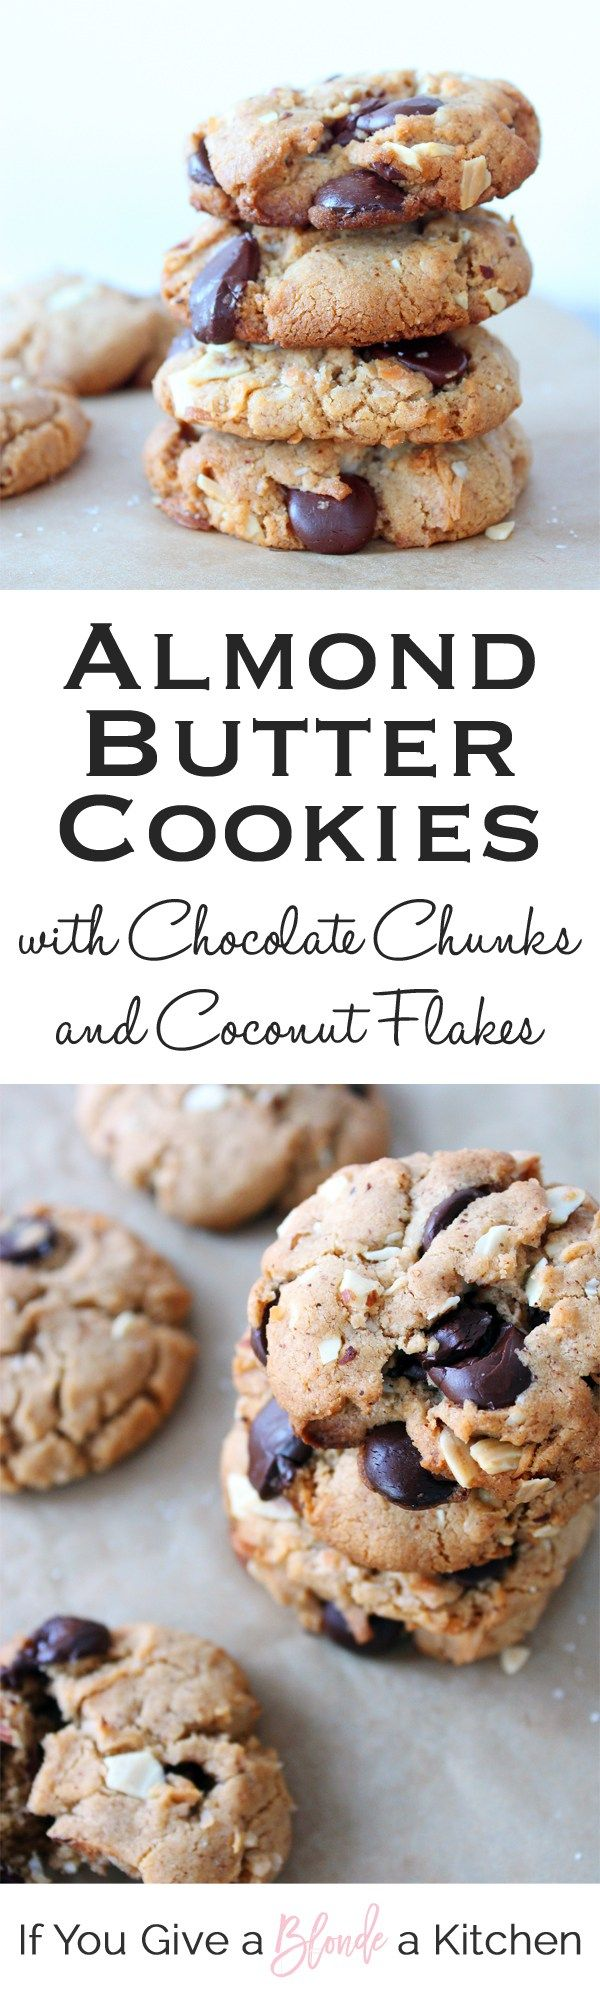 These almond butter cookies are so good!! They have coconut flakes and chocolate chips. YUM! | Recipe by @haleydwilliams